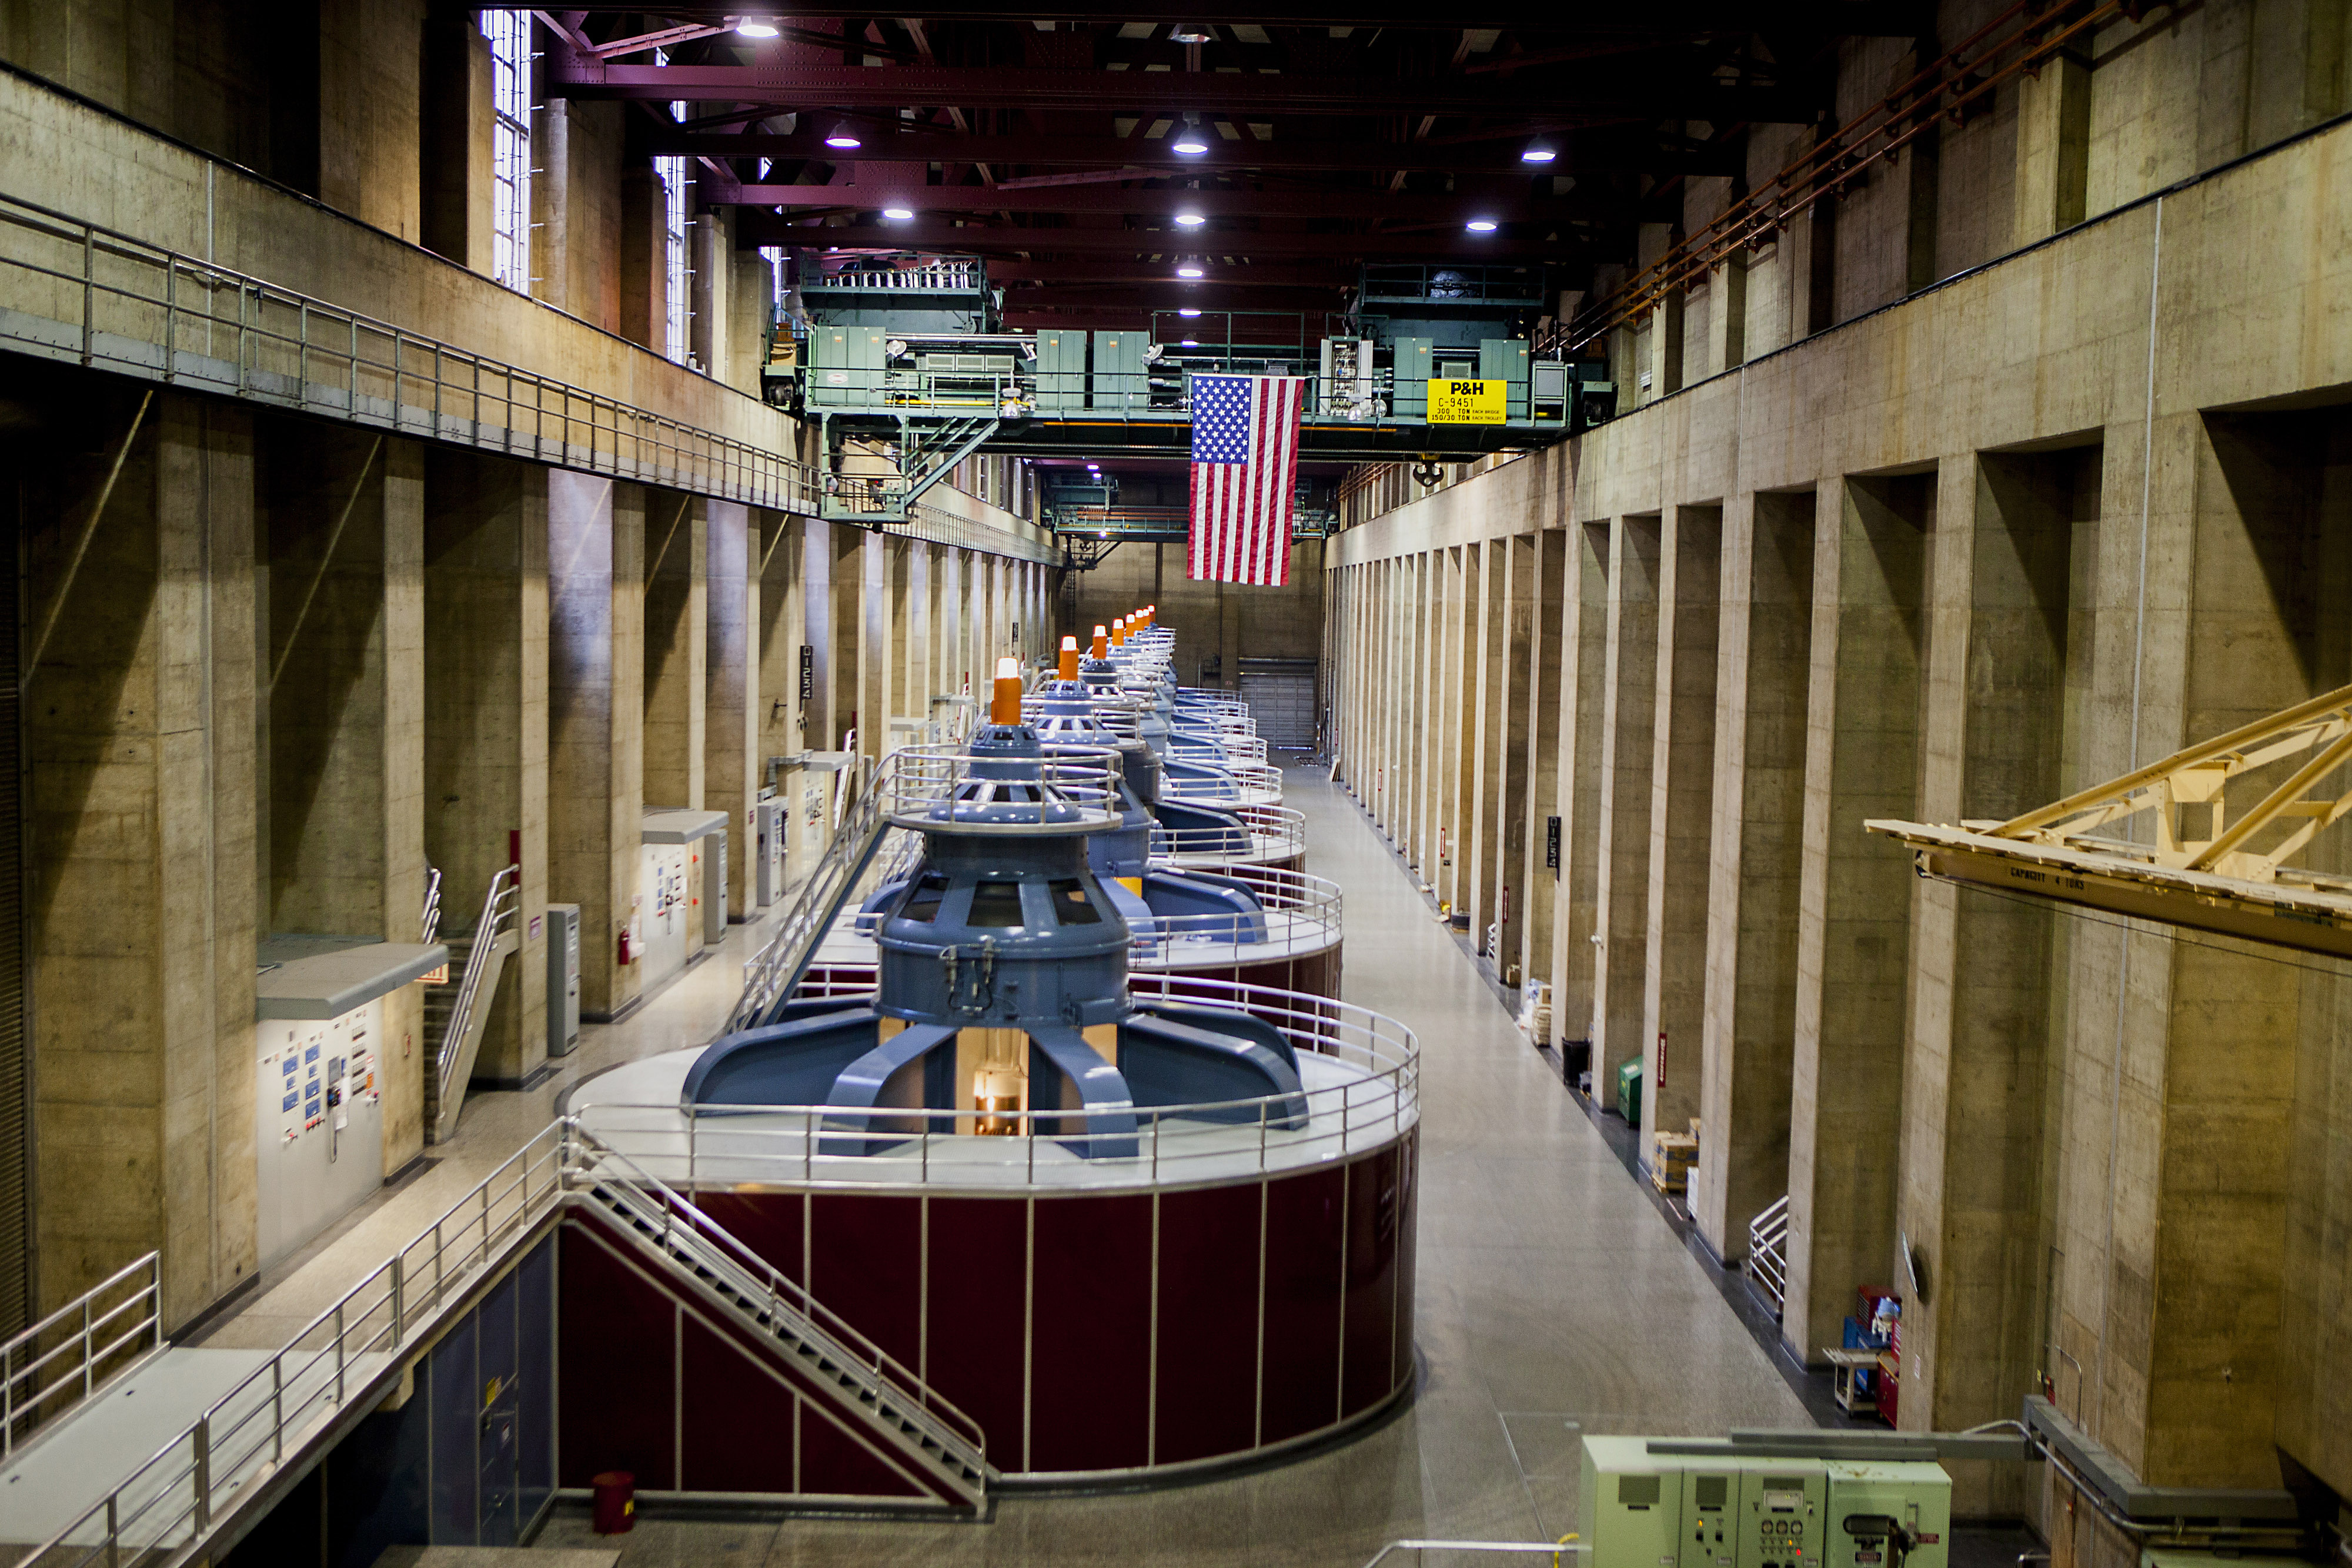 Turbines spin inside hydroelectric generators at the Hoover Dam in Boulder City, Nevada on March 24, 2014.